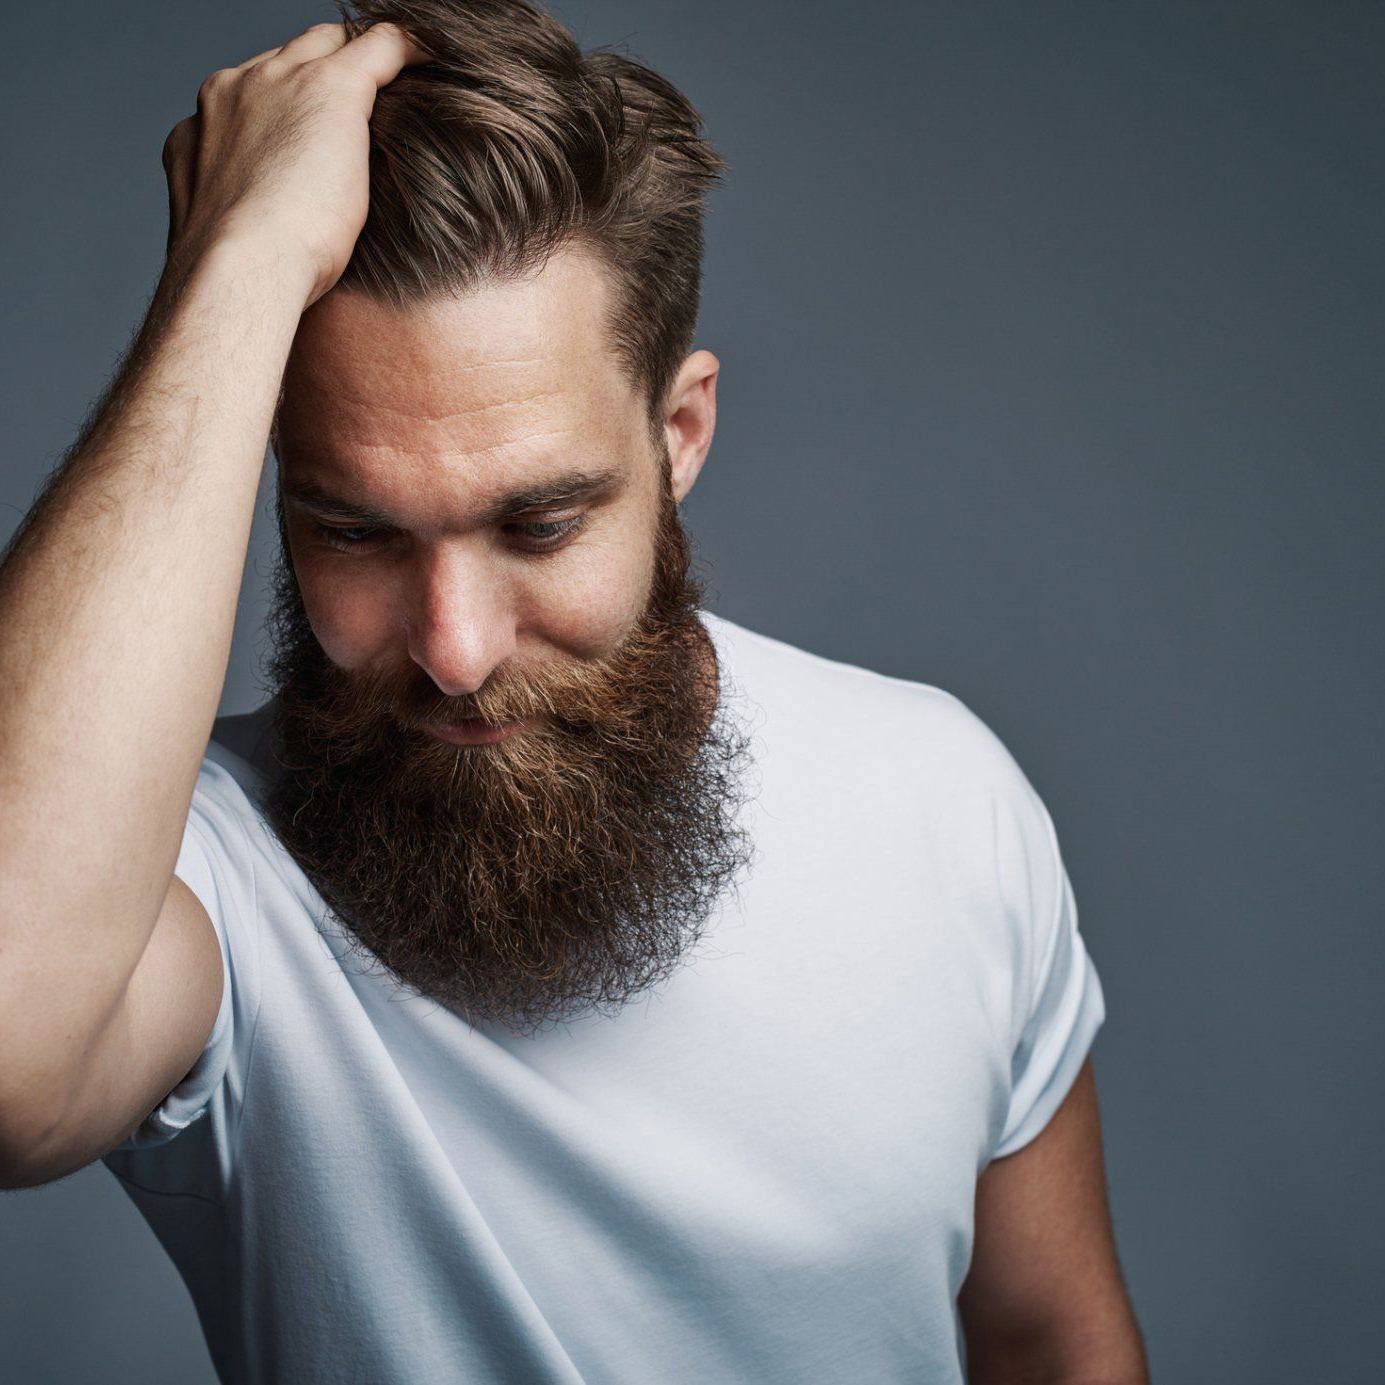 Man with beard running hand through hair